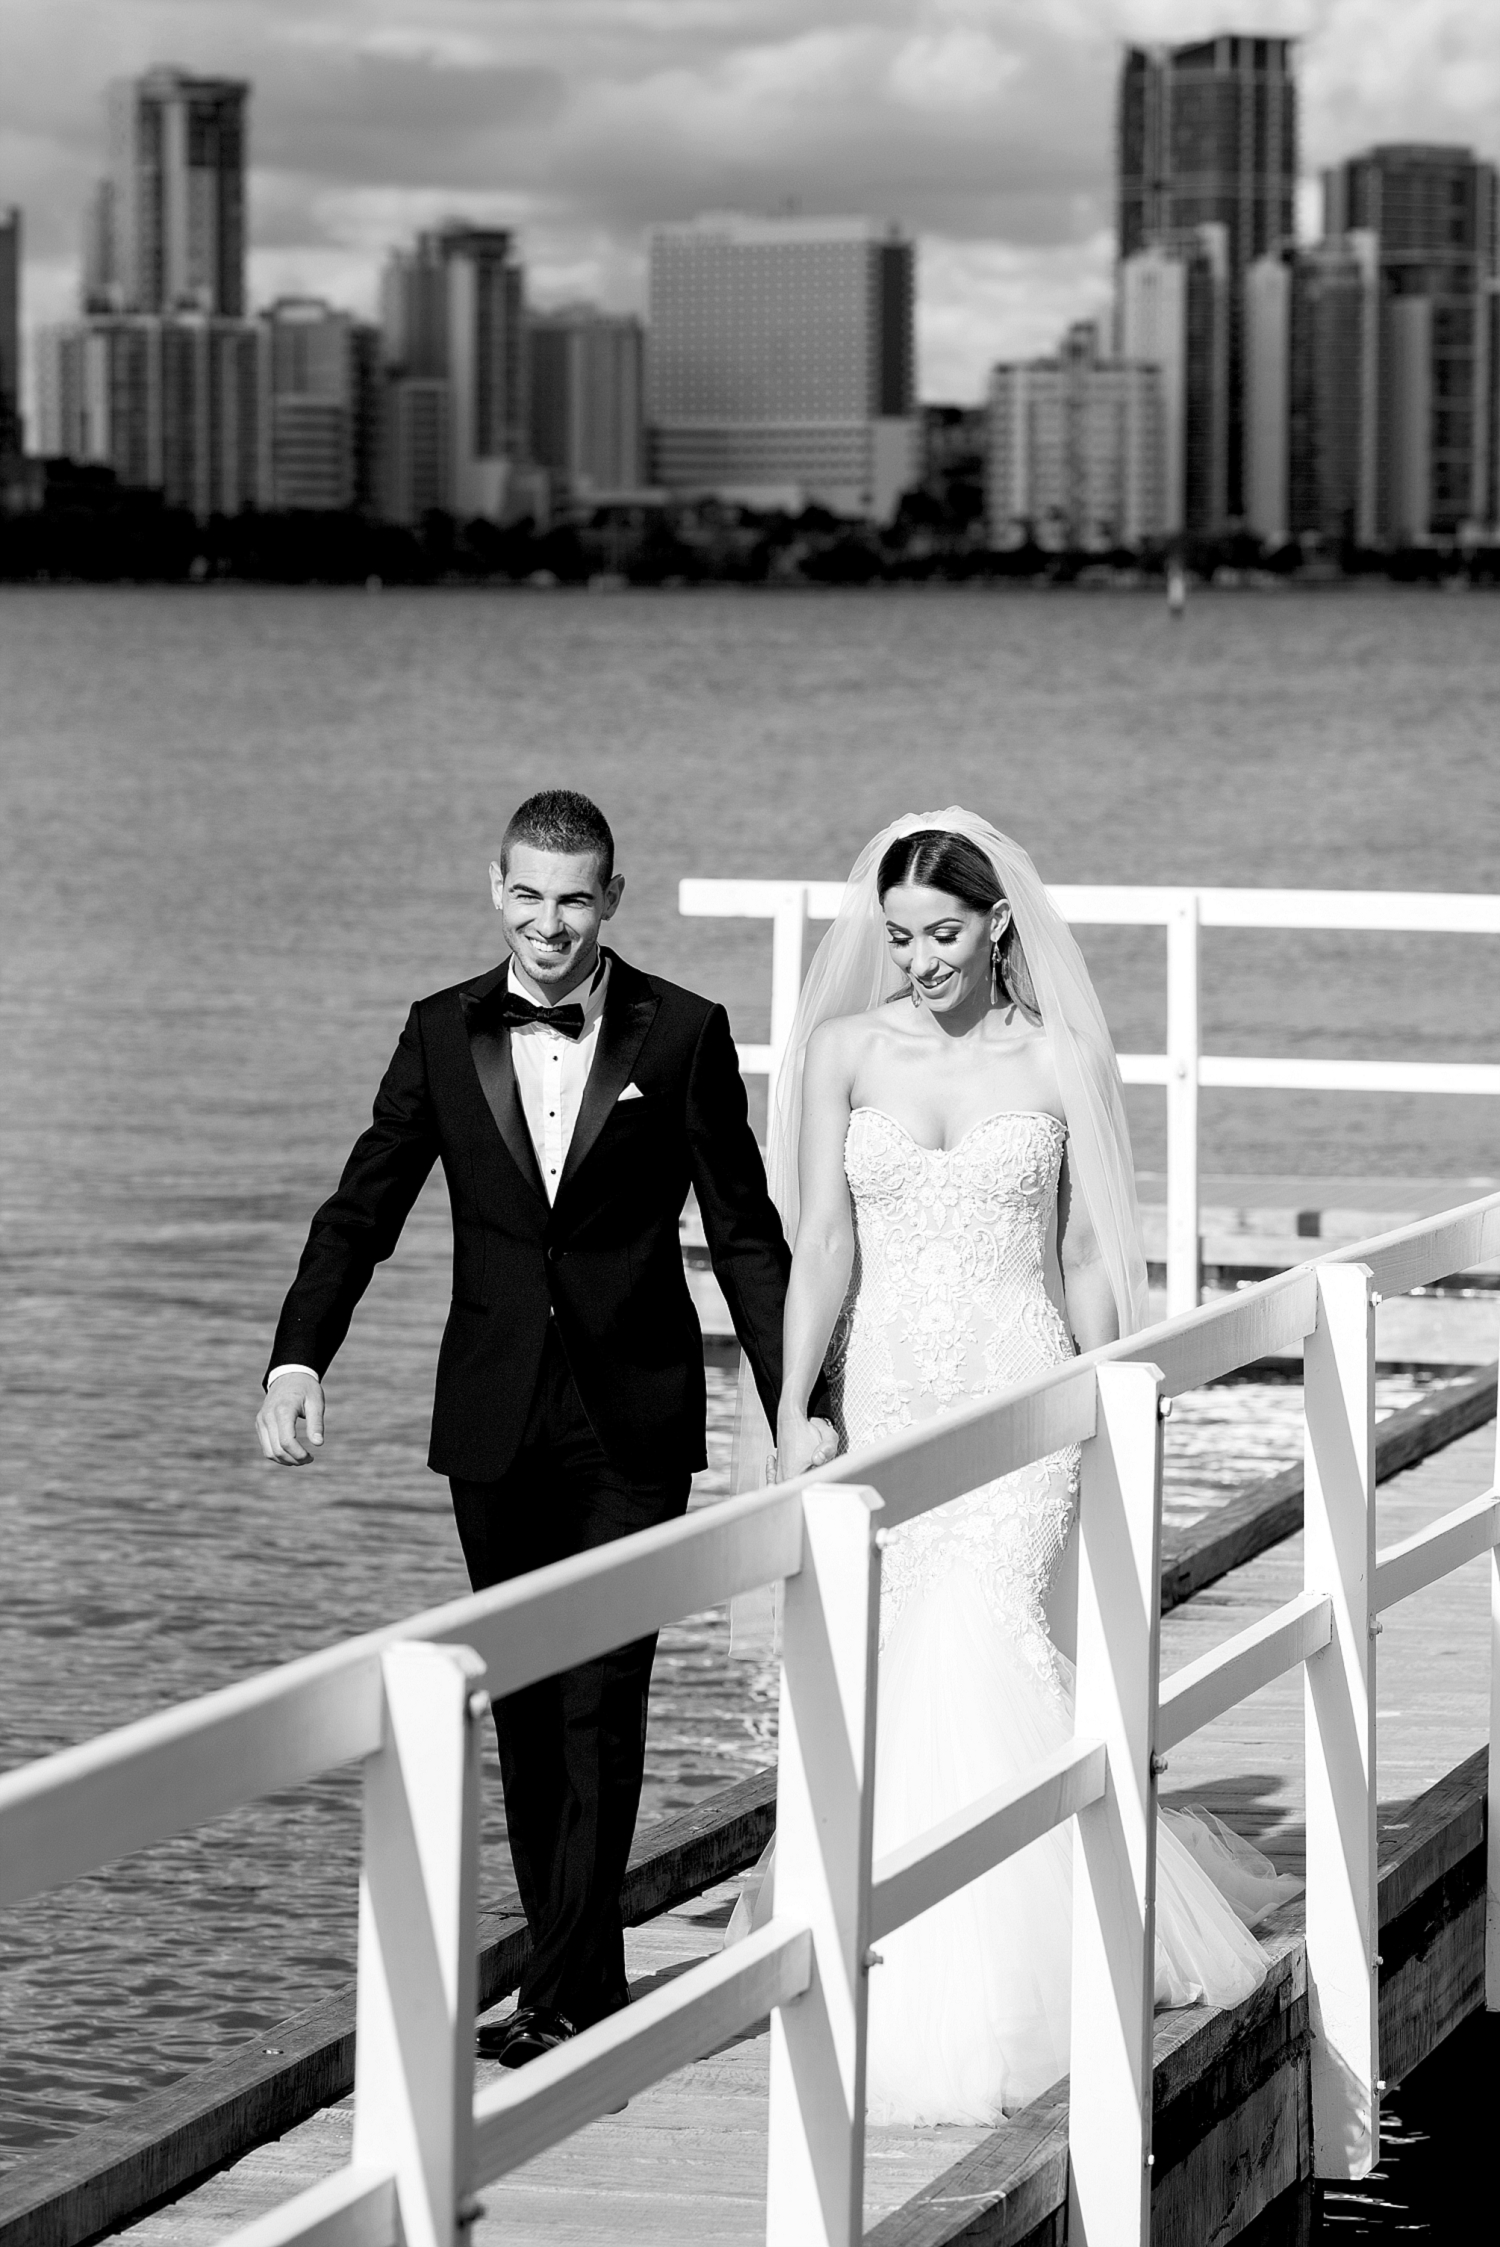 24 south perth fishing jetty wedding perth deray simcoe.jpg